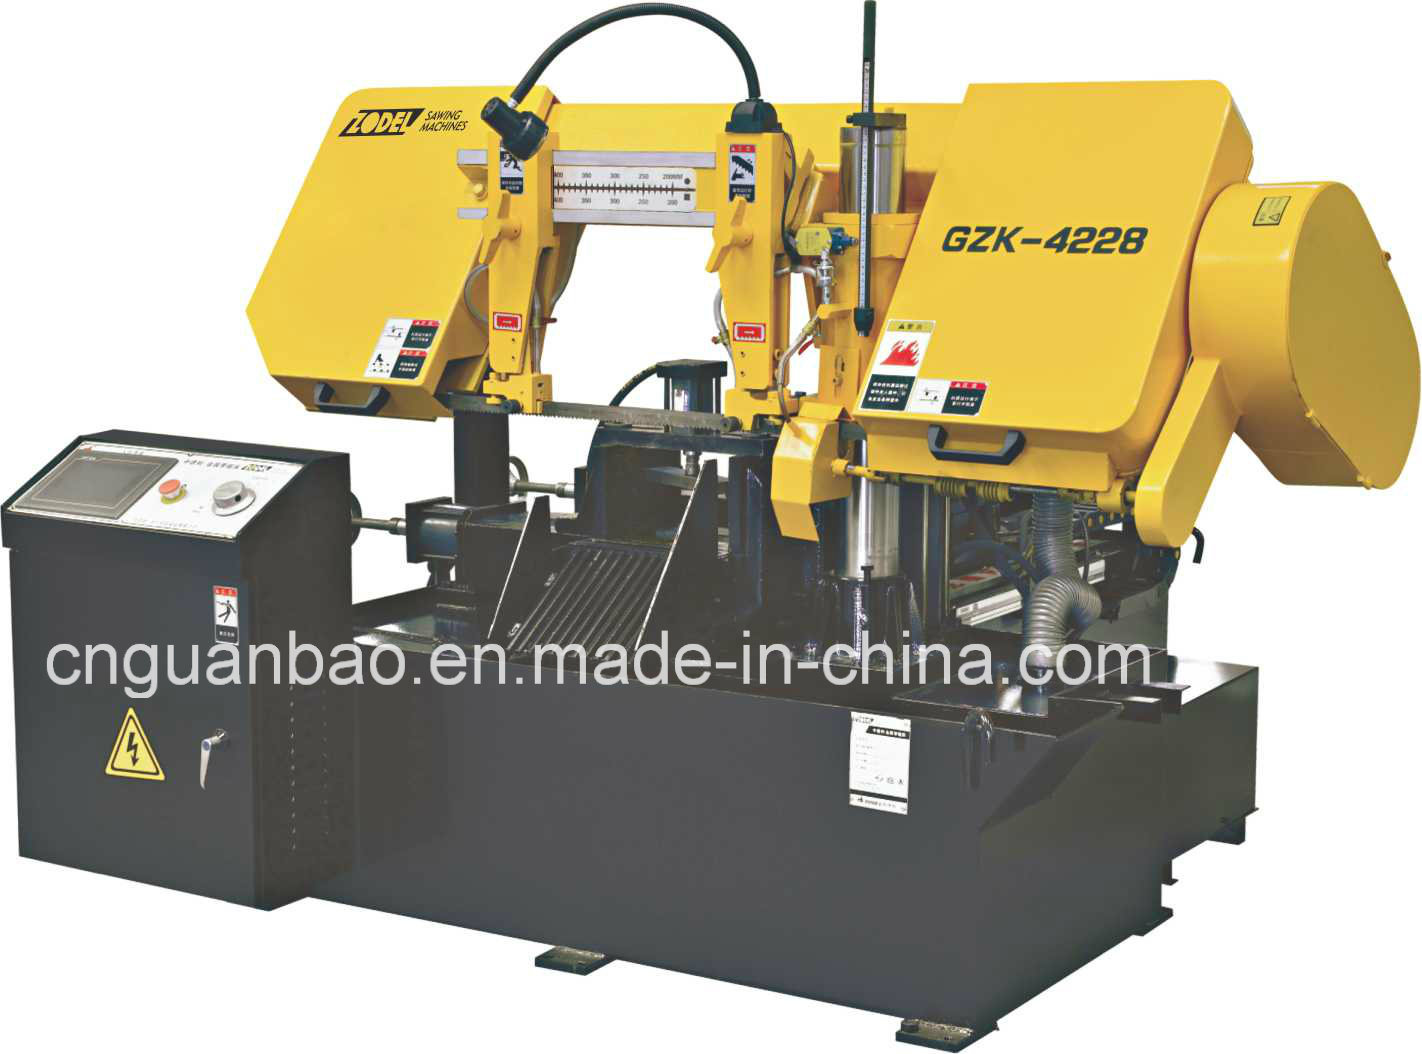 Mini CNC Band Saw Machine Gzk4228